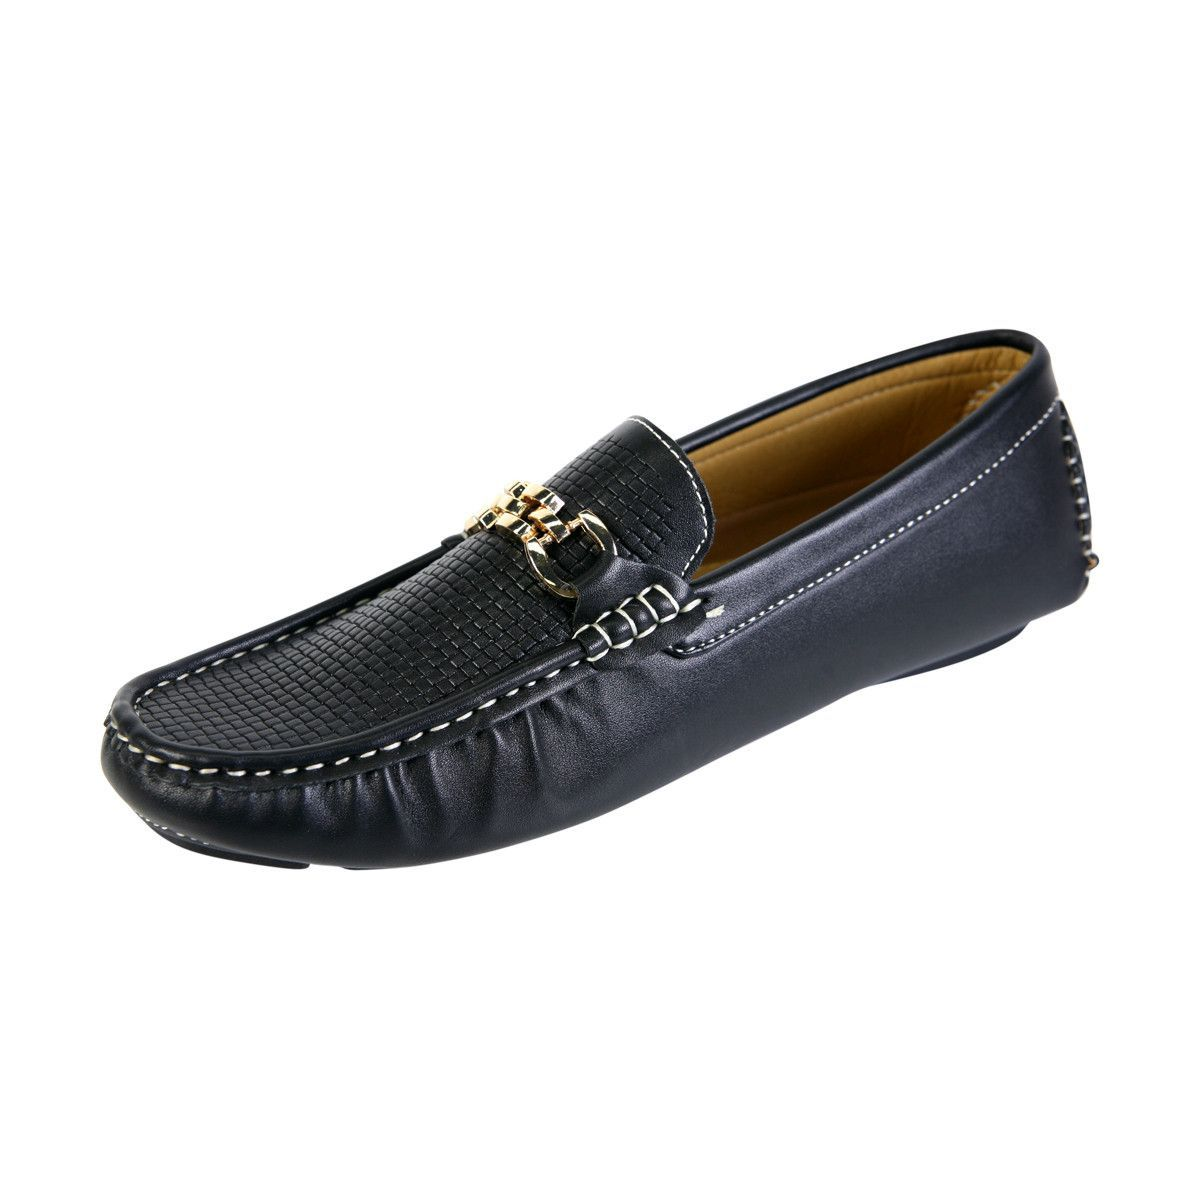 410fa49064f Marcovitale - Men s Driving Moc Buckle Driving Loafer - Black ...